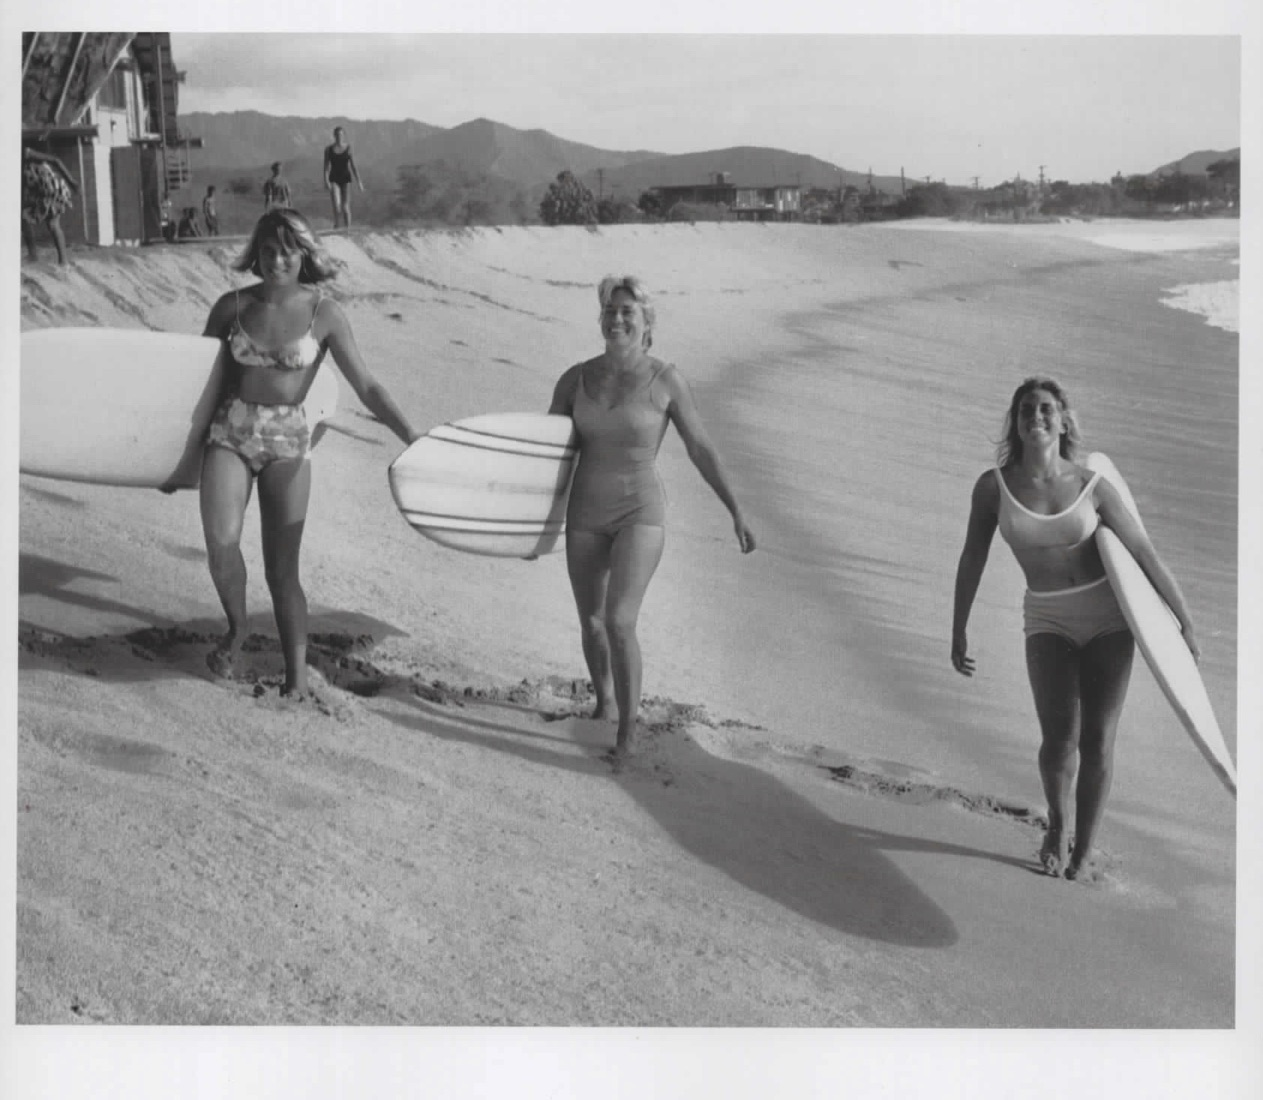 surfer girls in the 1960s